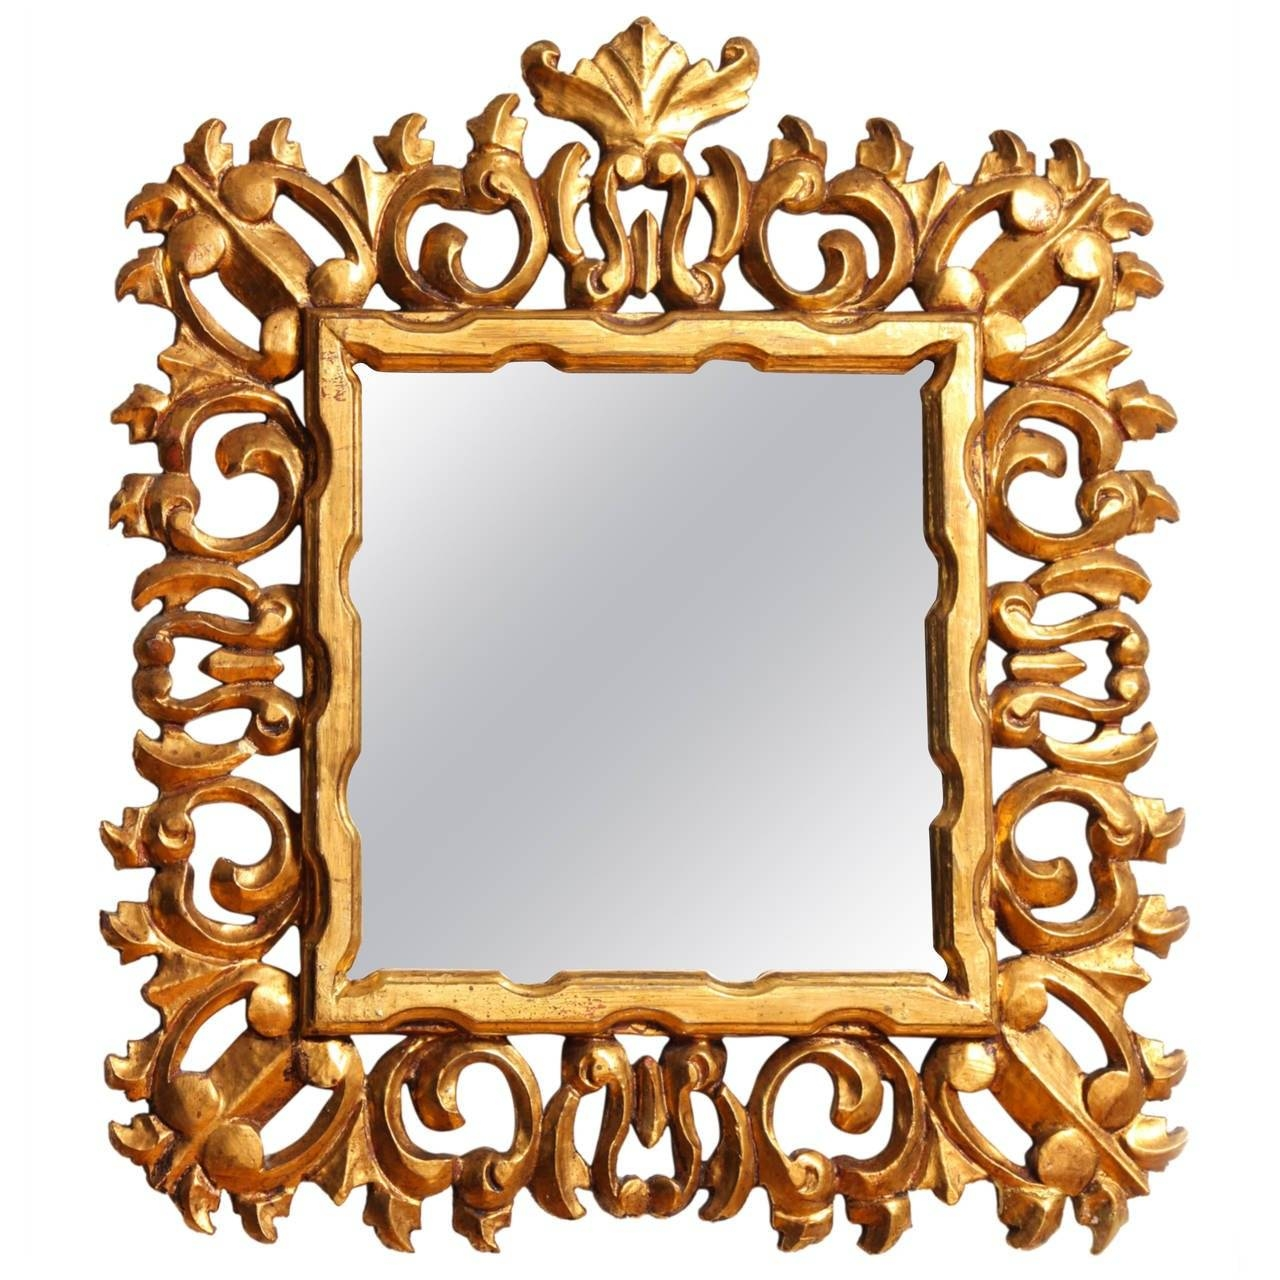 Carved And Gilded Italian Baroque Style Mirror Frame For Sale At Intended For Baroque Style Mirrors (View 10 of 25)